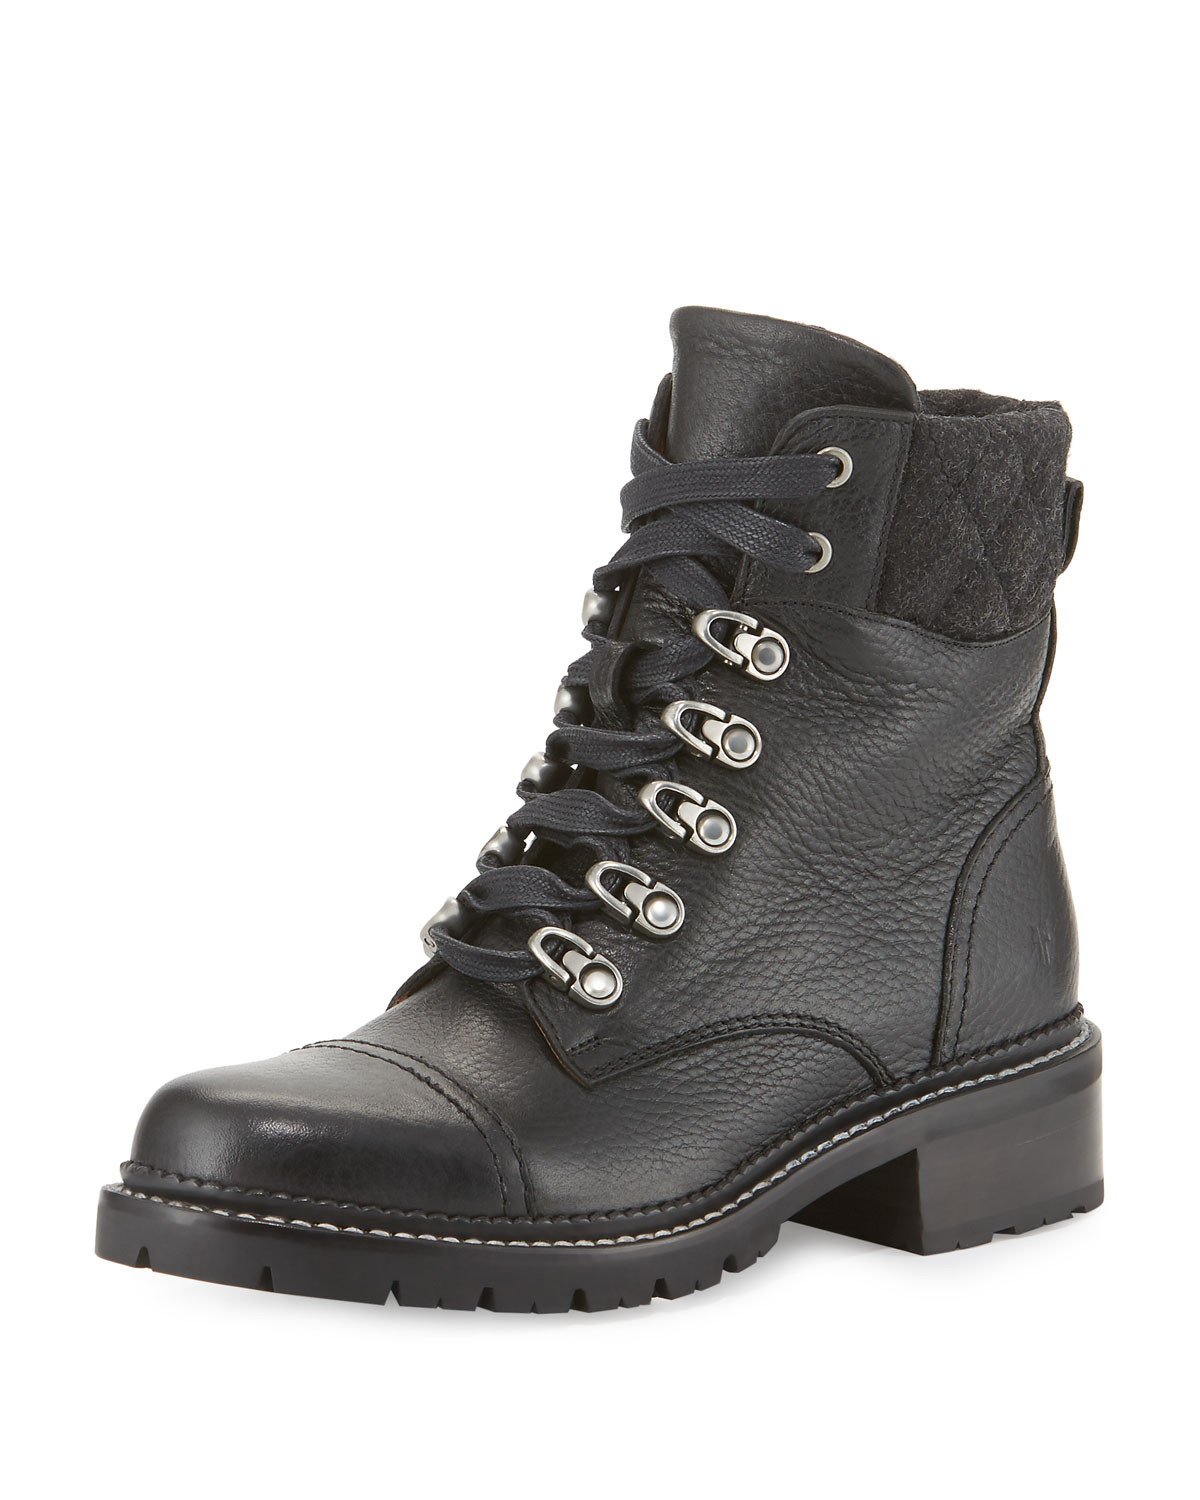 f11bbbfd5b8 Samantha Leather Hiker Boots, Black